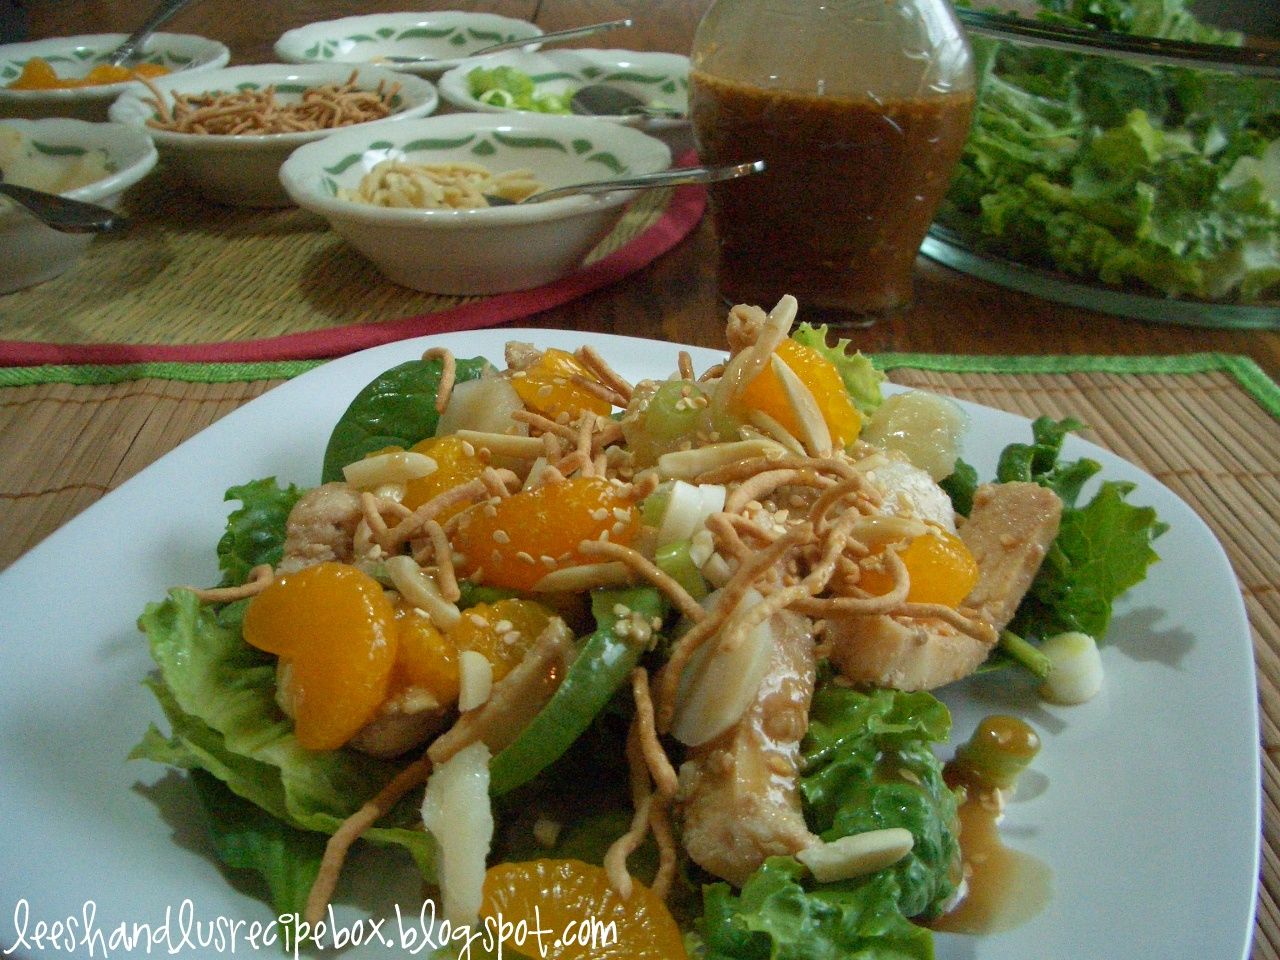 Asian chicken salad dressing